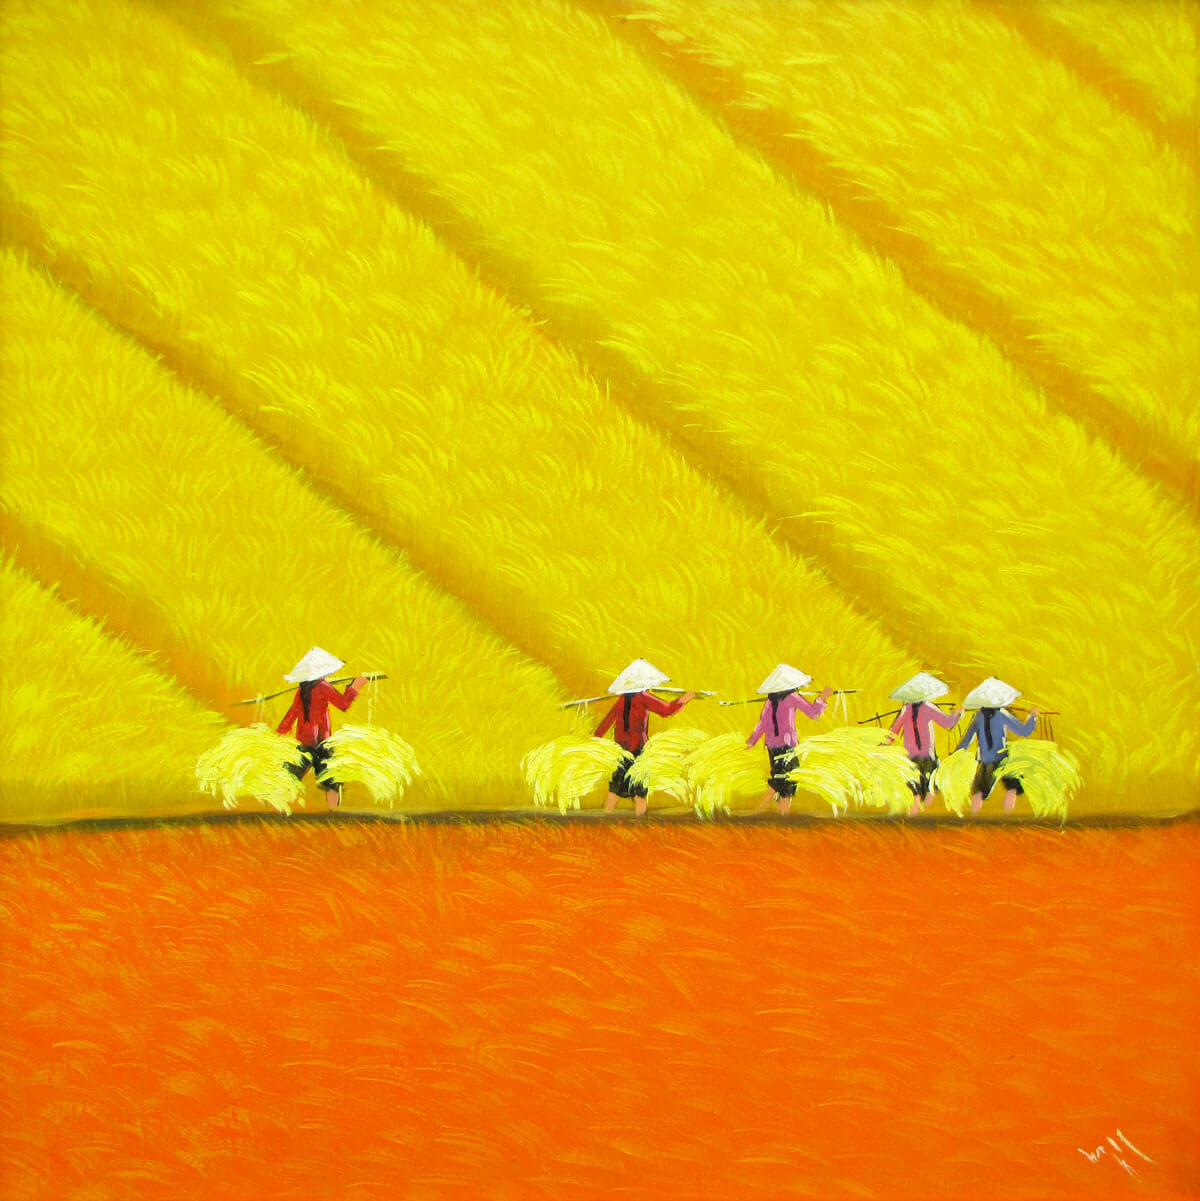 Harvest season 10-Vietnamese Painting